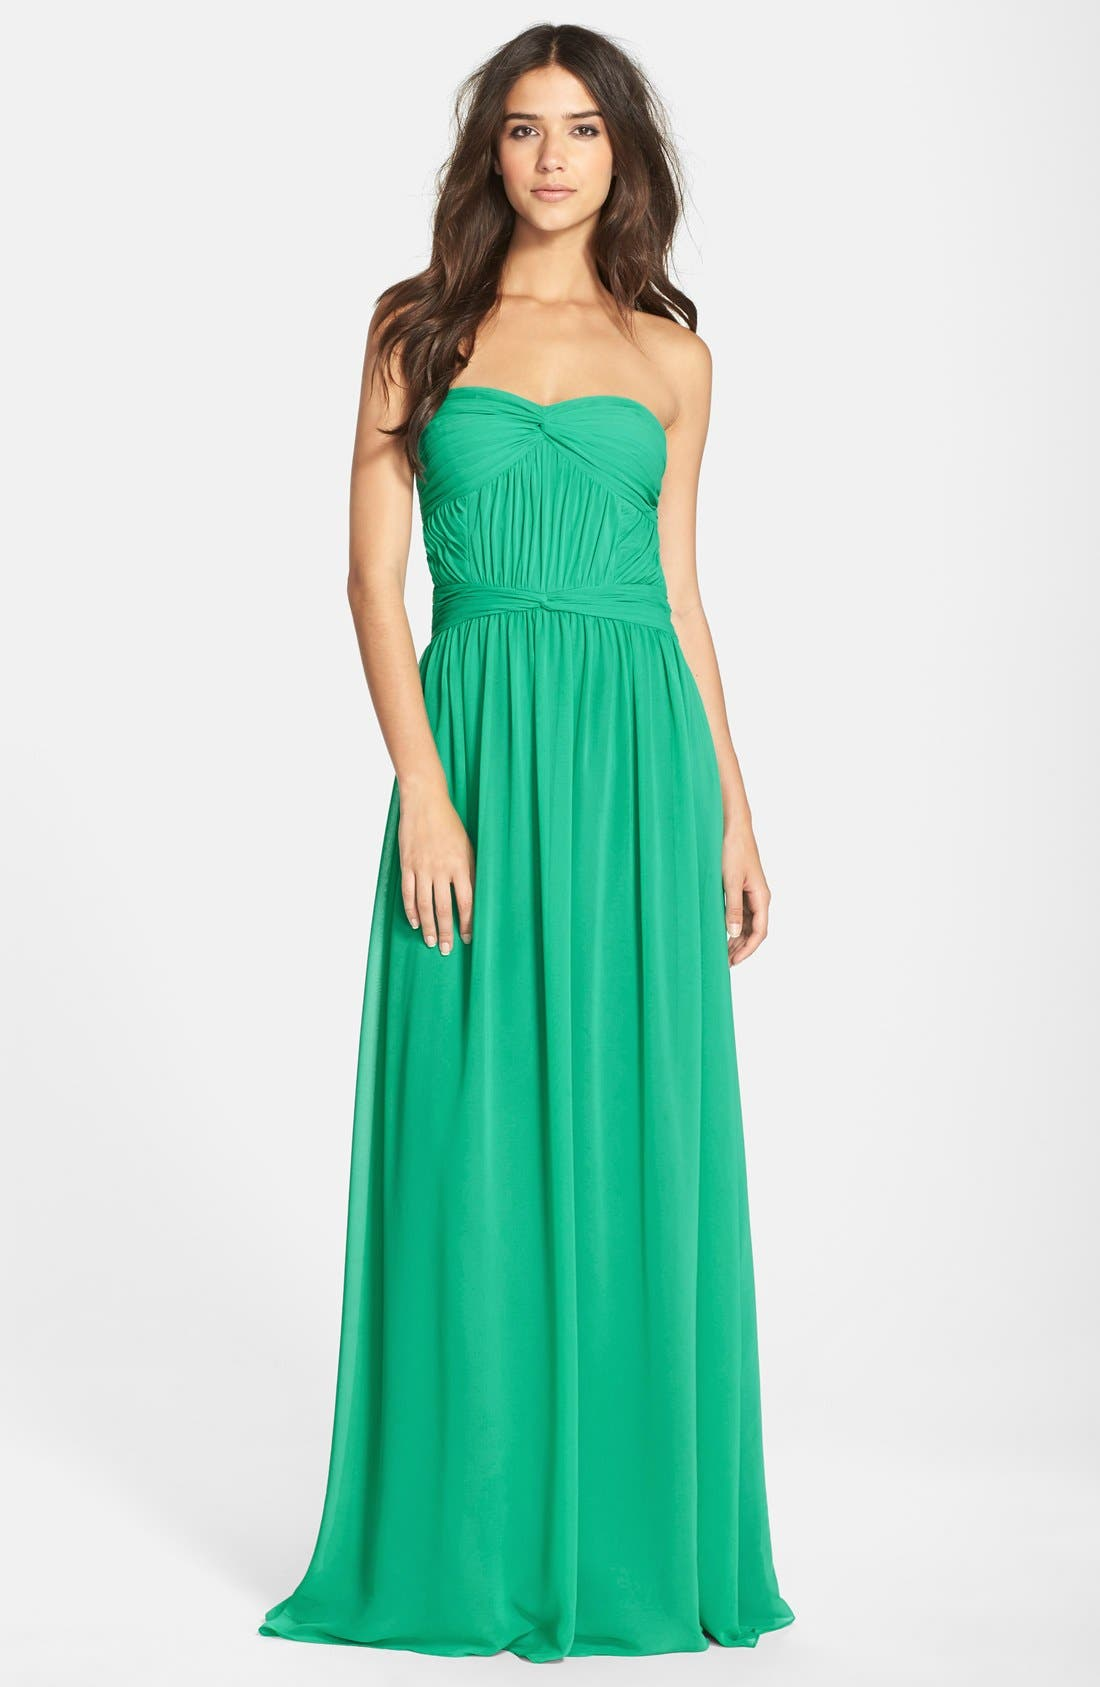 Alternate Image 1 Selected - Hailey by Adrianna Papell Chiffon Fit & Flare Gown